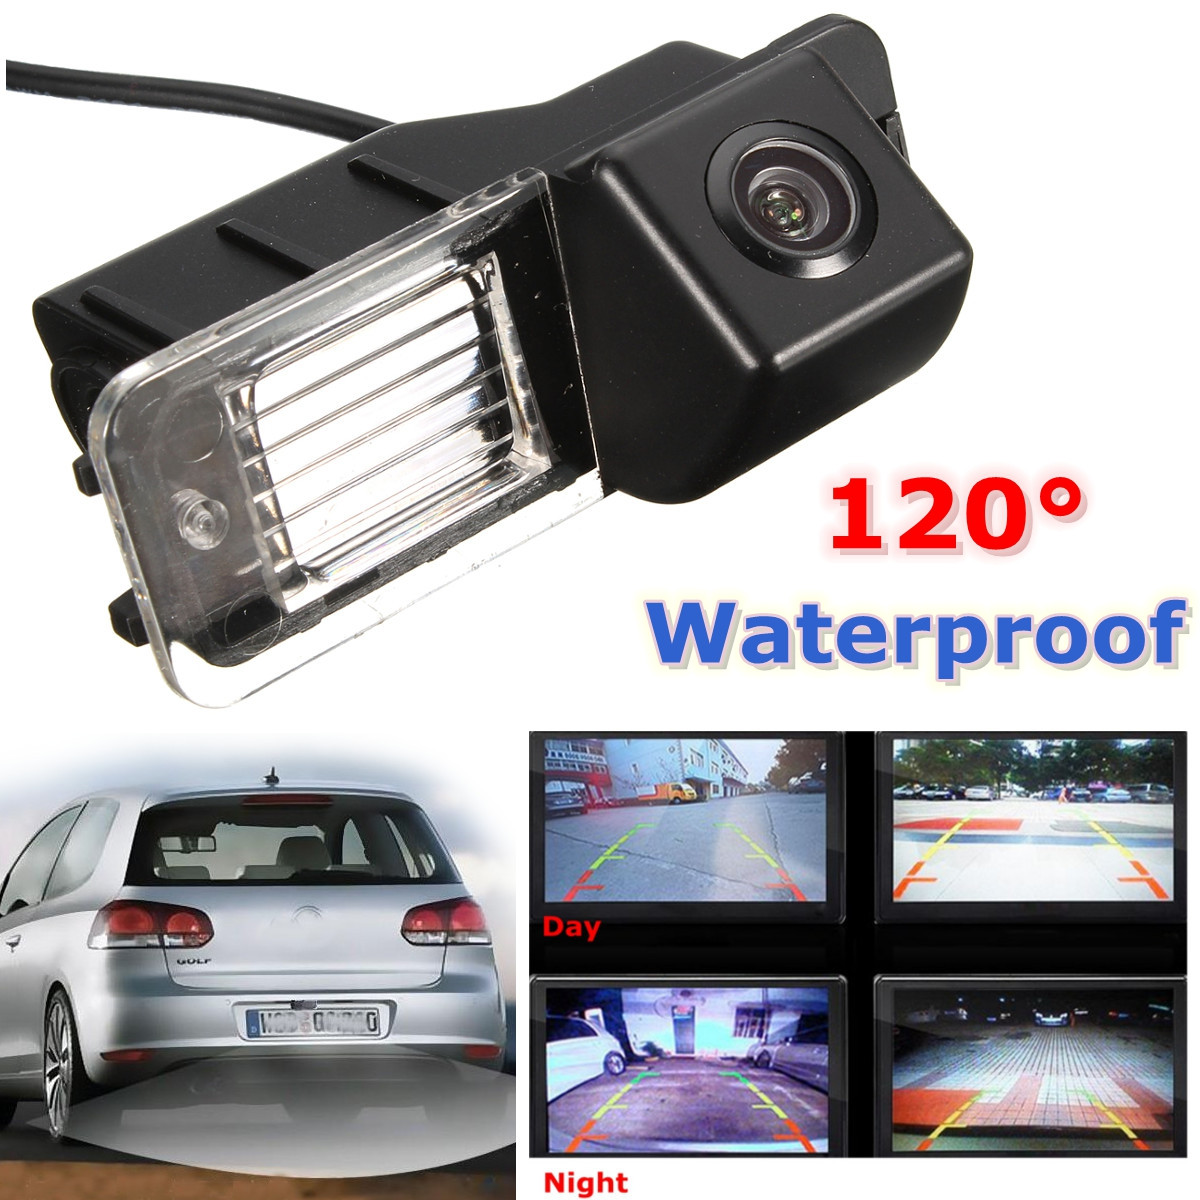 CCD HD Auto Car Rear View Camera Reverse Parking Night Vision Waterproof  For VW Golf MK 6 MK 7 Polo V (6R)  Golf 6 VI  Passat